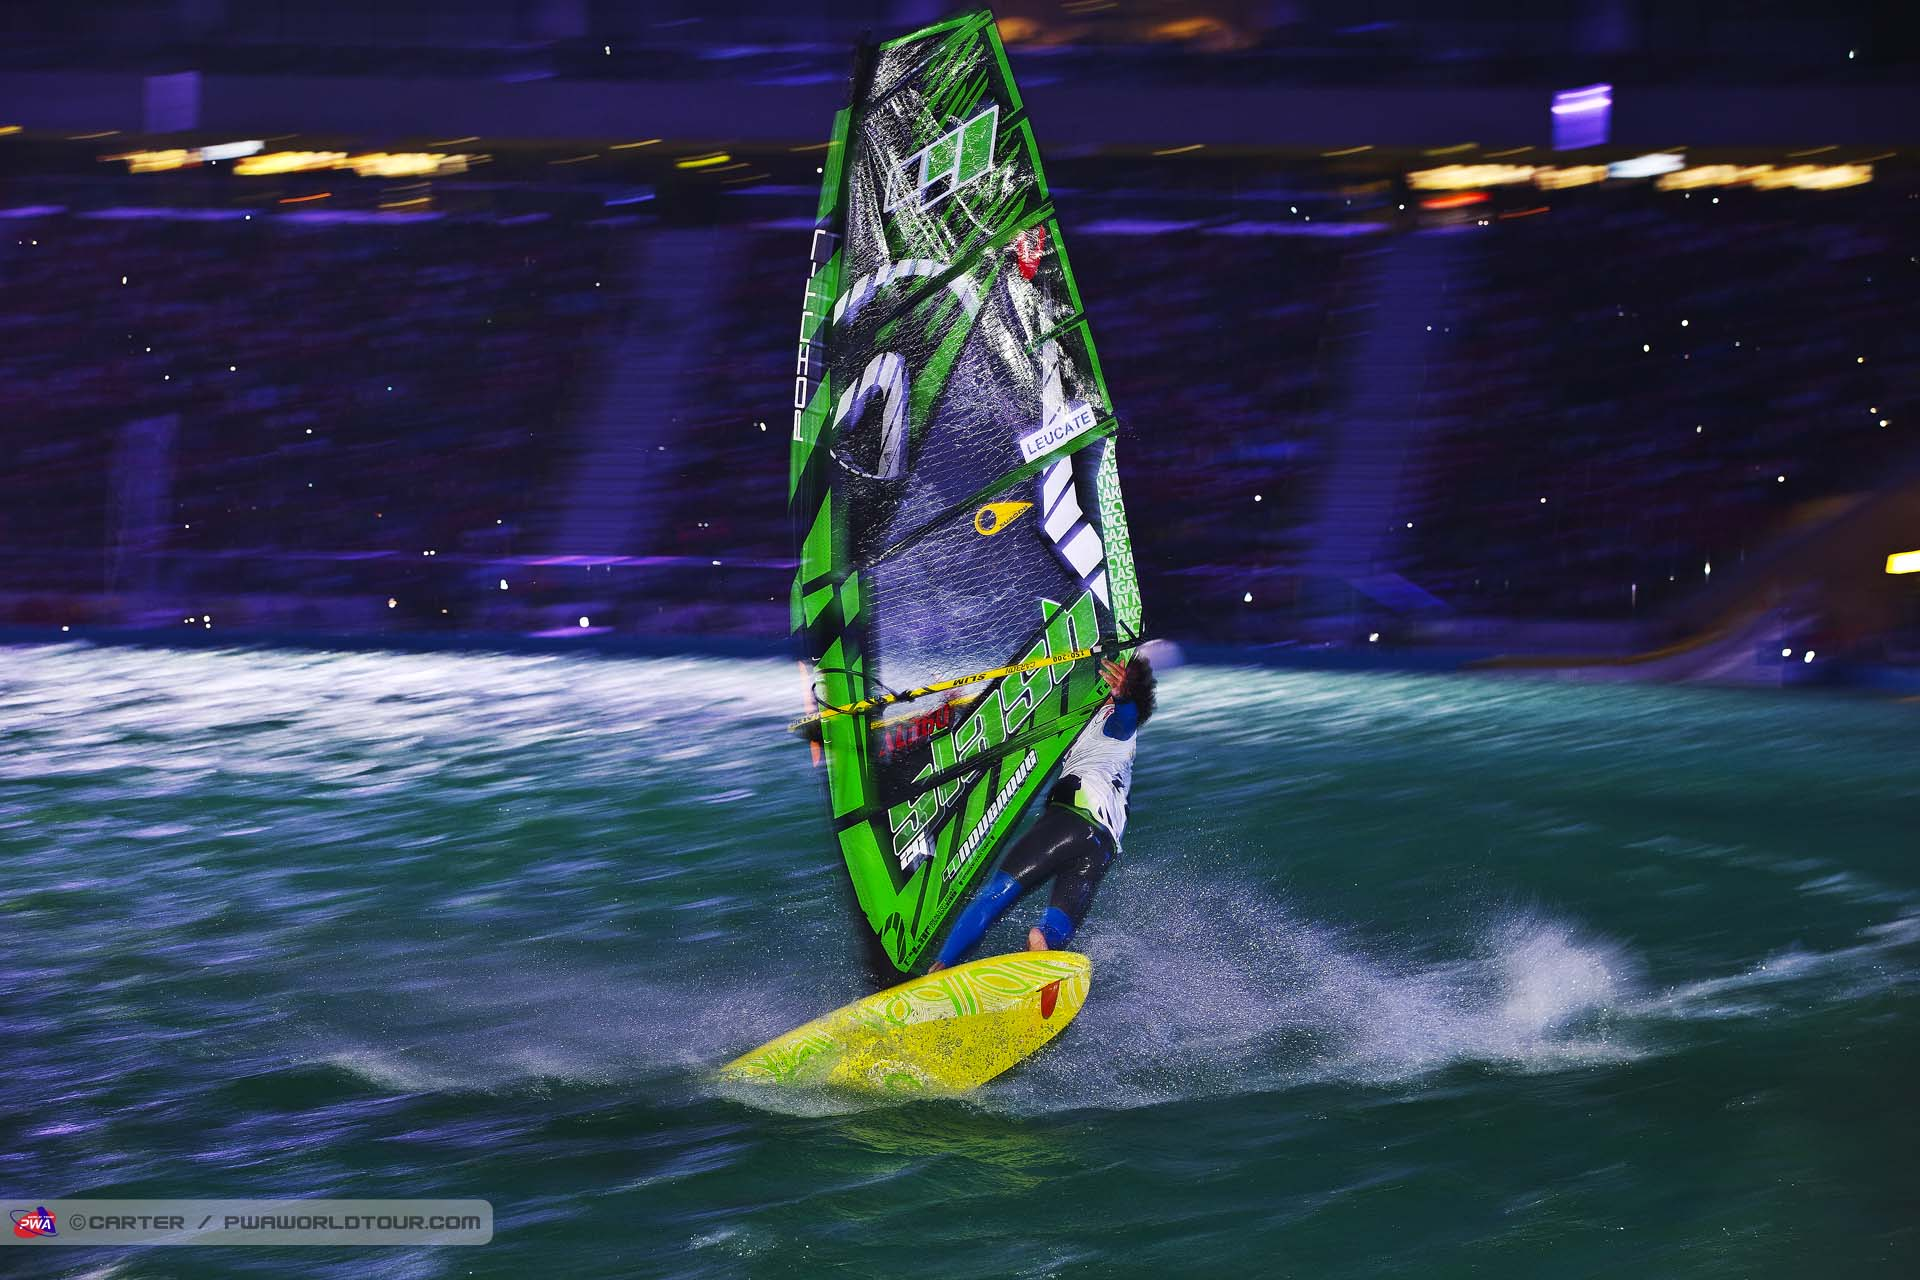 Nicolas Akgazciyan at PWA World Cup